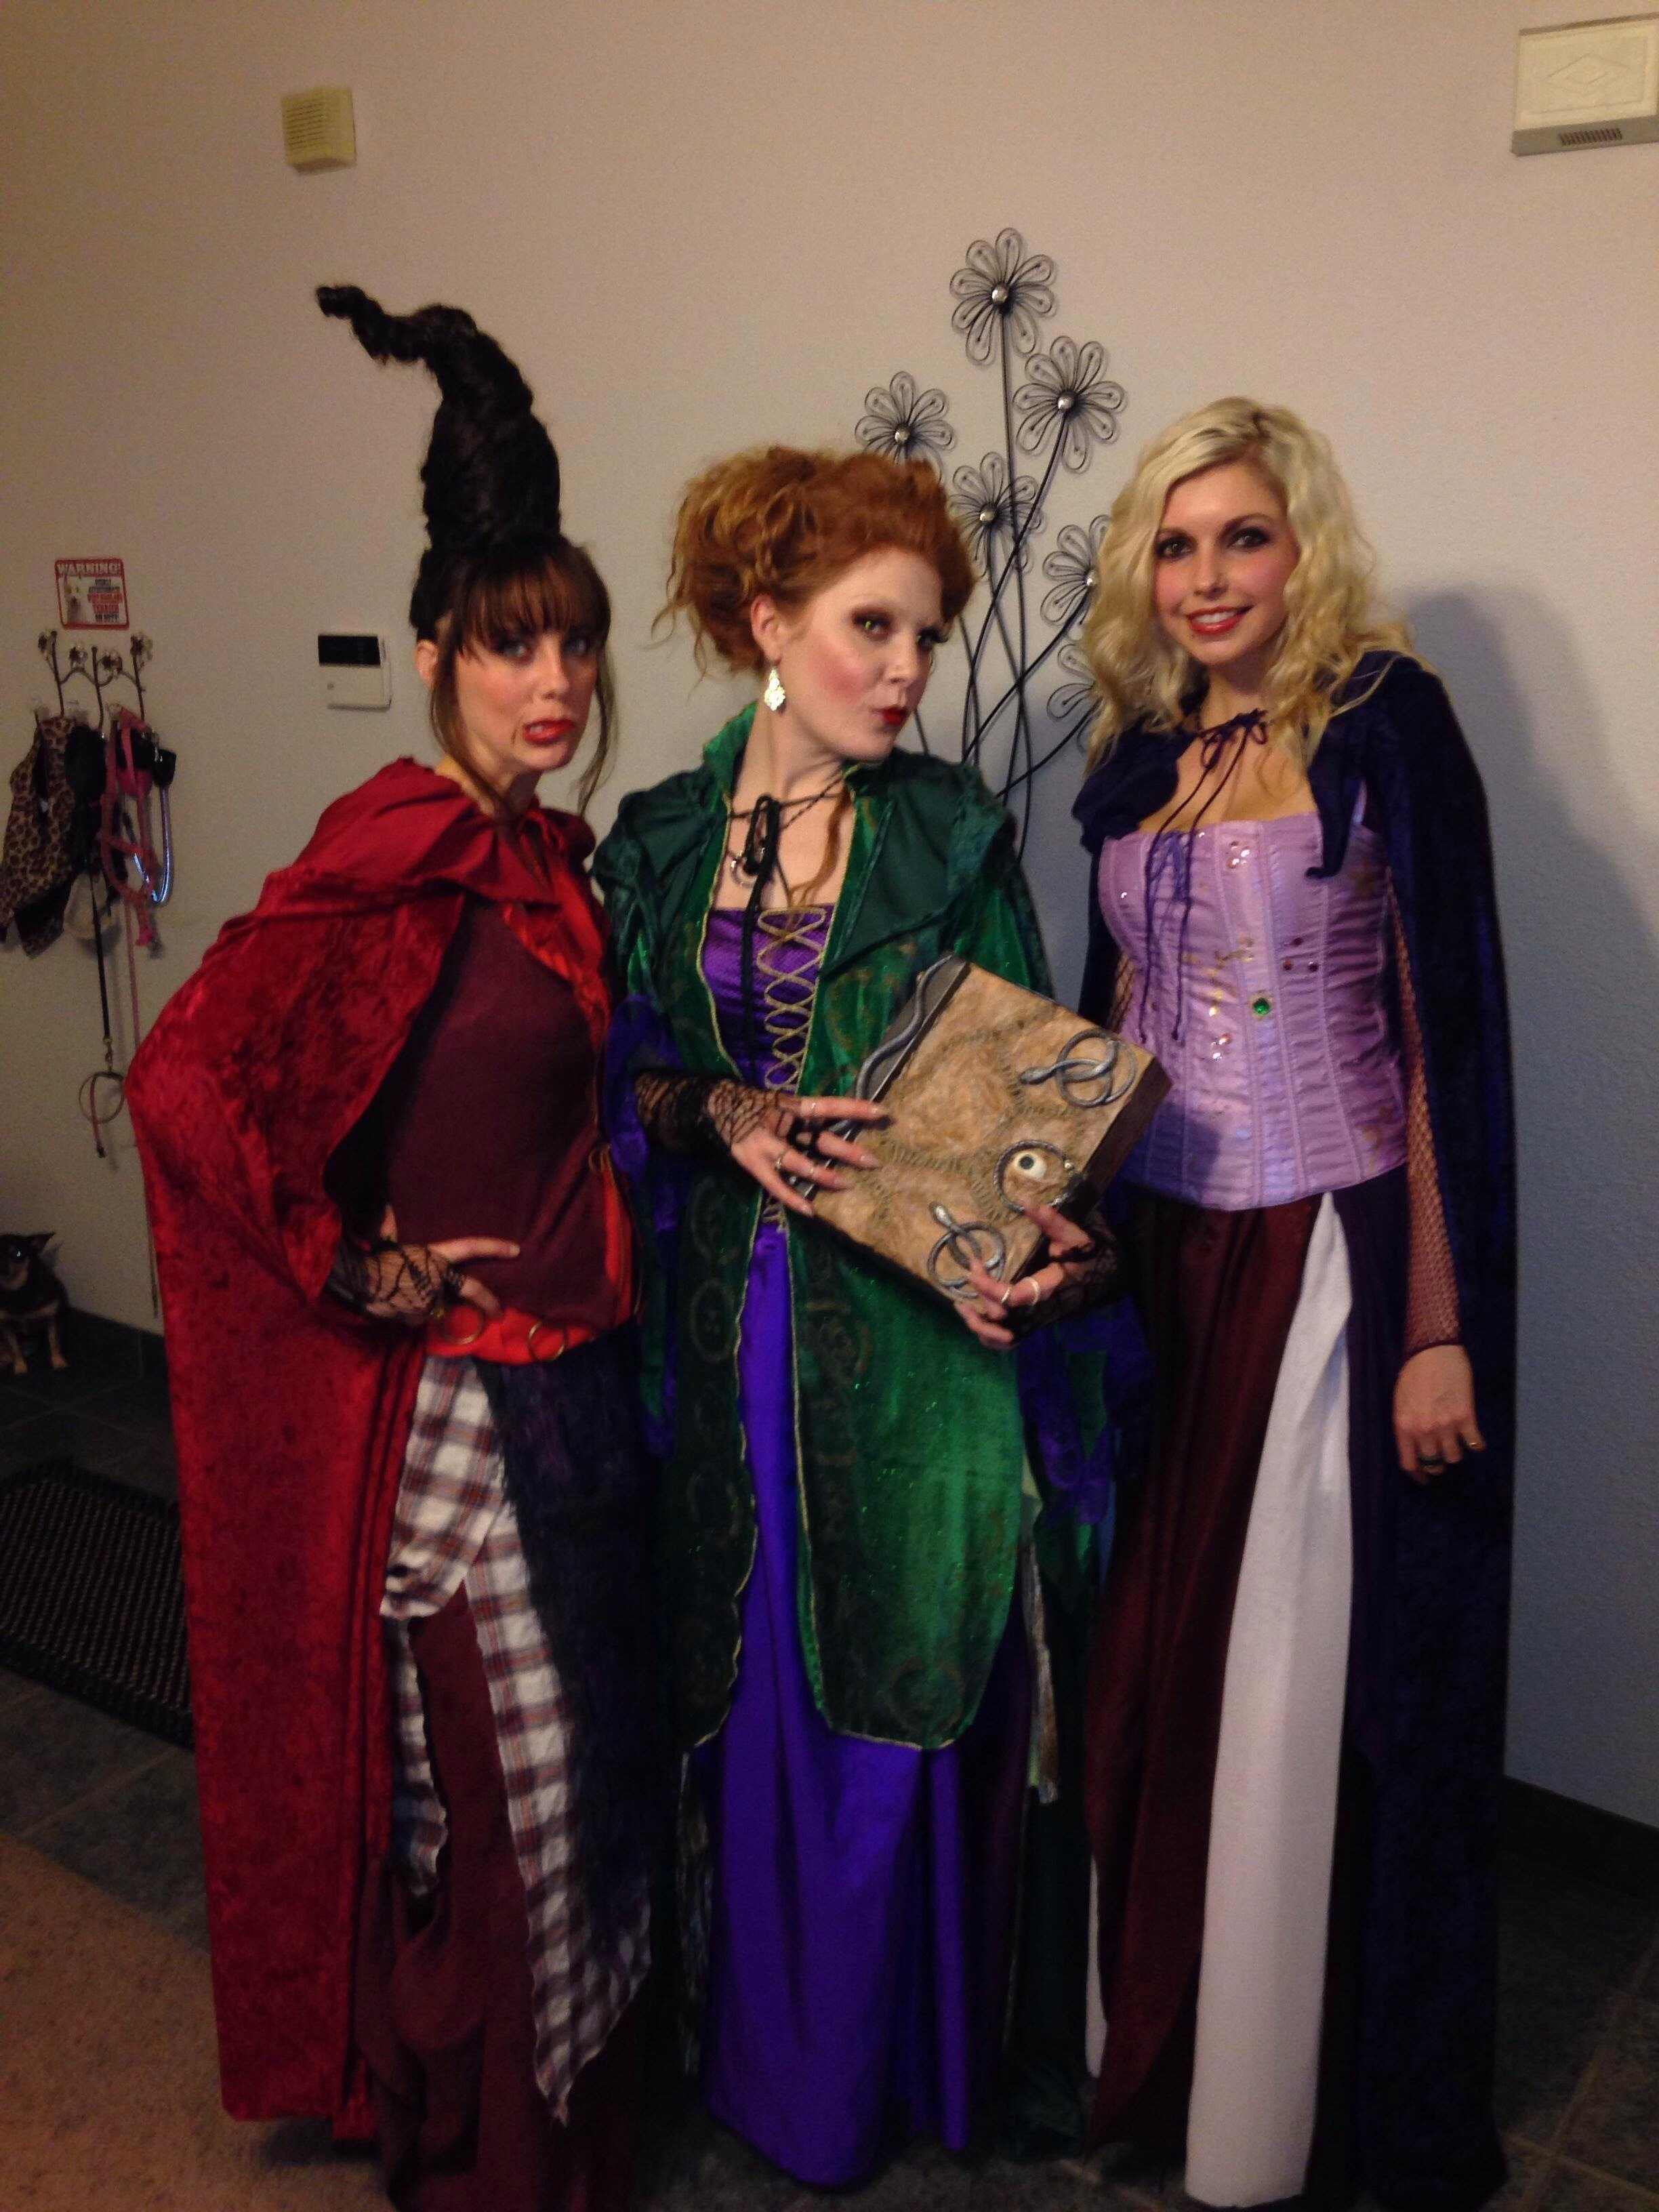 10 Attractive Halloween Ideas For 3 People 35 fun group halloween costumes for you and your friends sanderson 9 2021